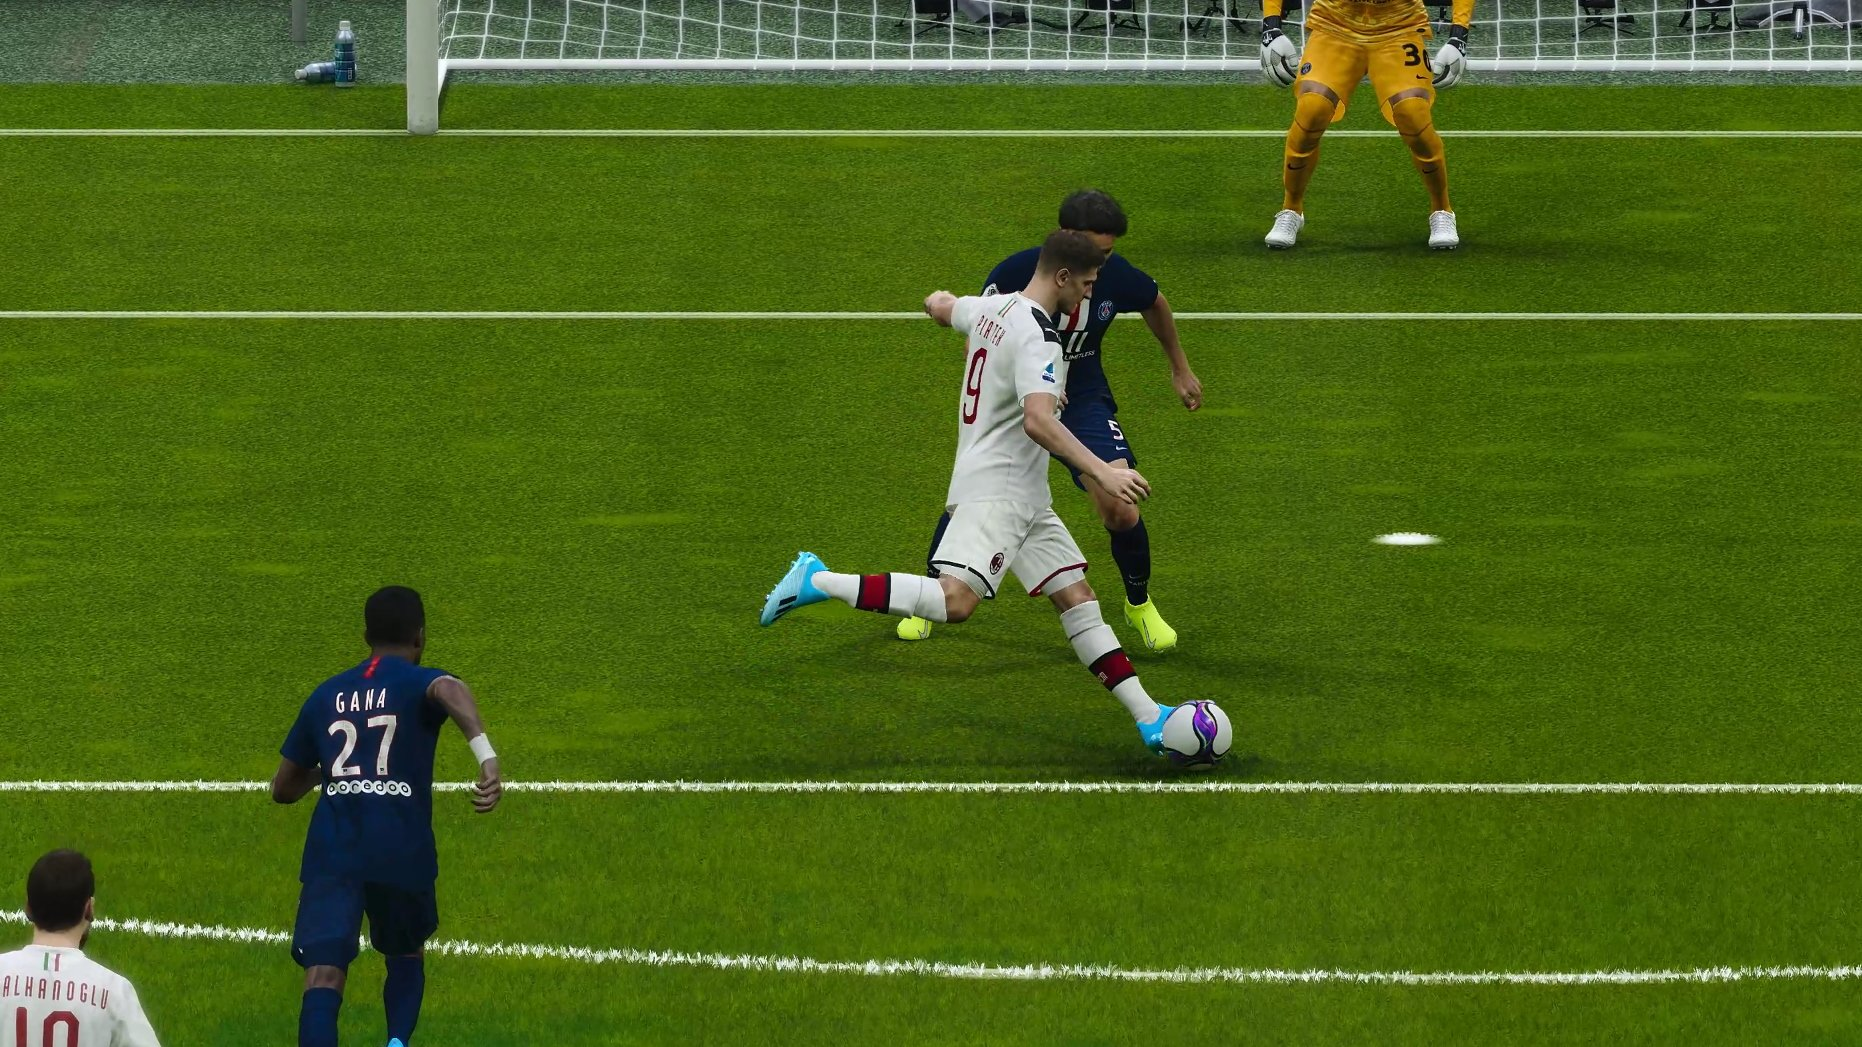 Pes 2020 Review.Efootball Pes 2020 Review Anything But A Howler Shacknews